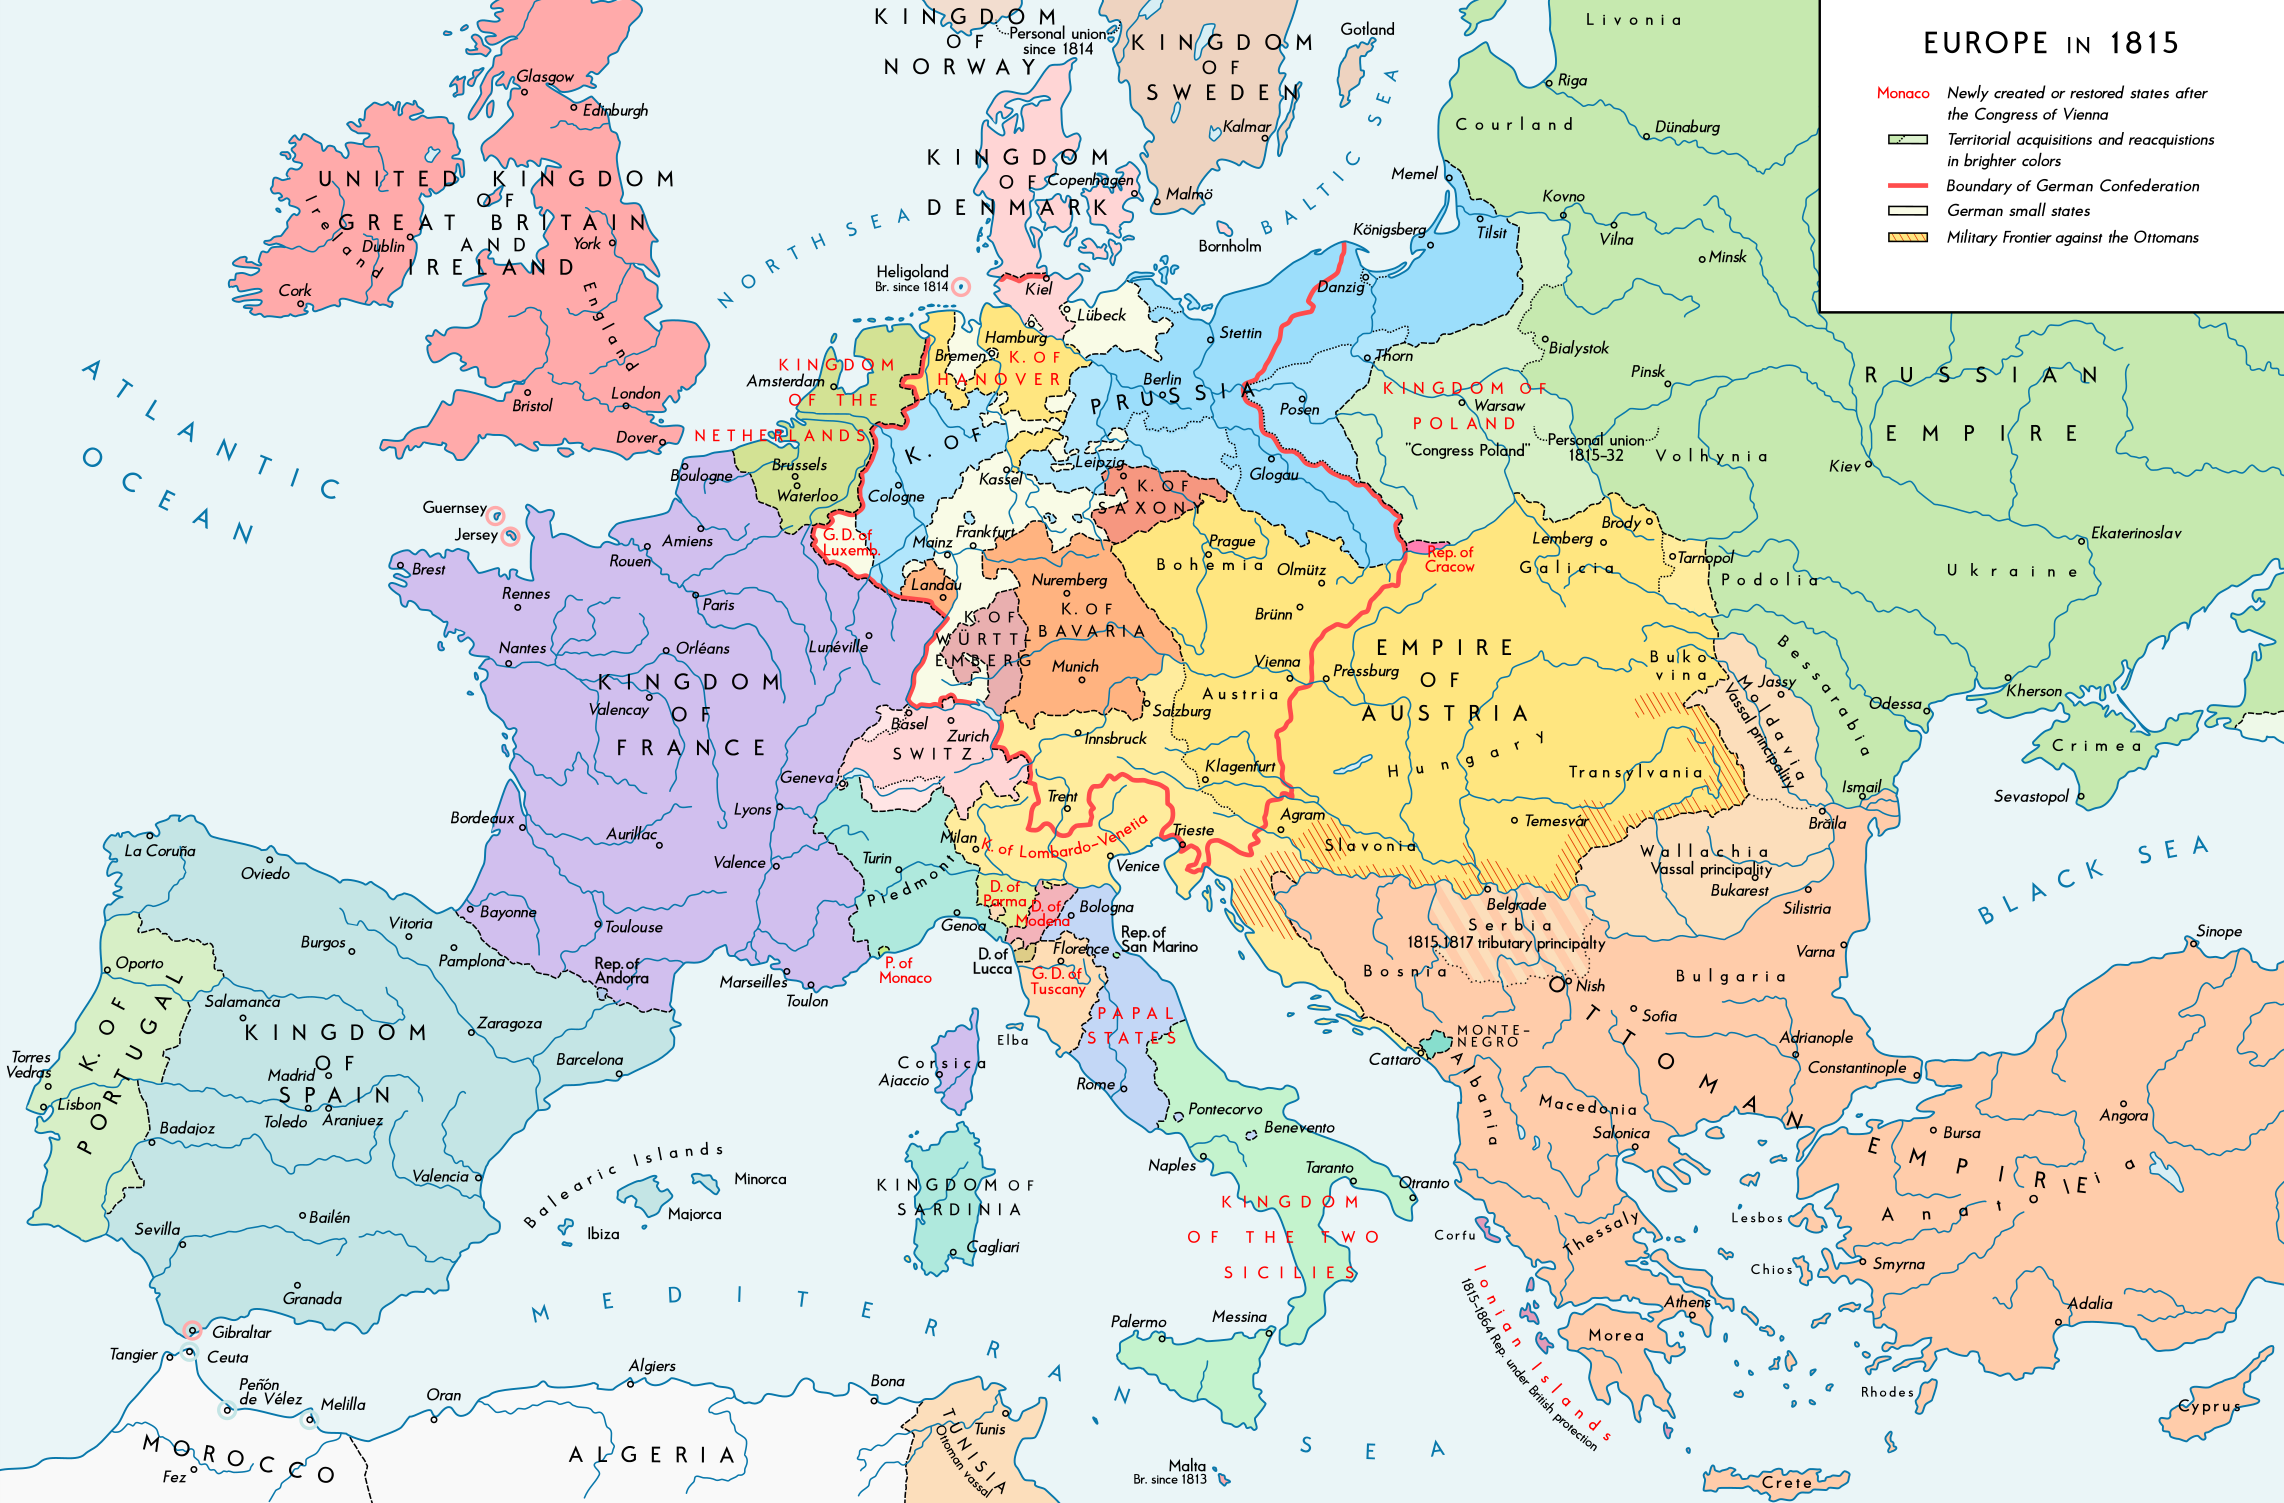 File:Europe 1815 map en.png   Wikimedia Commons